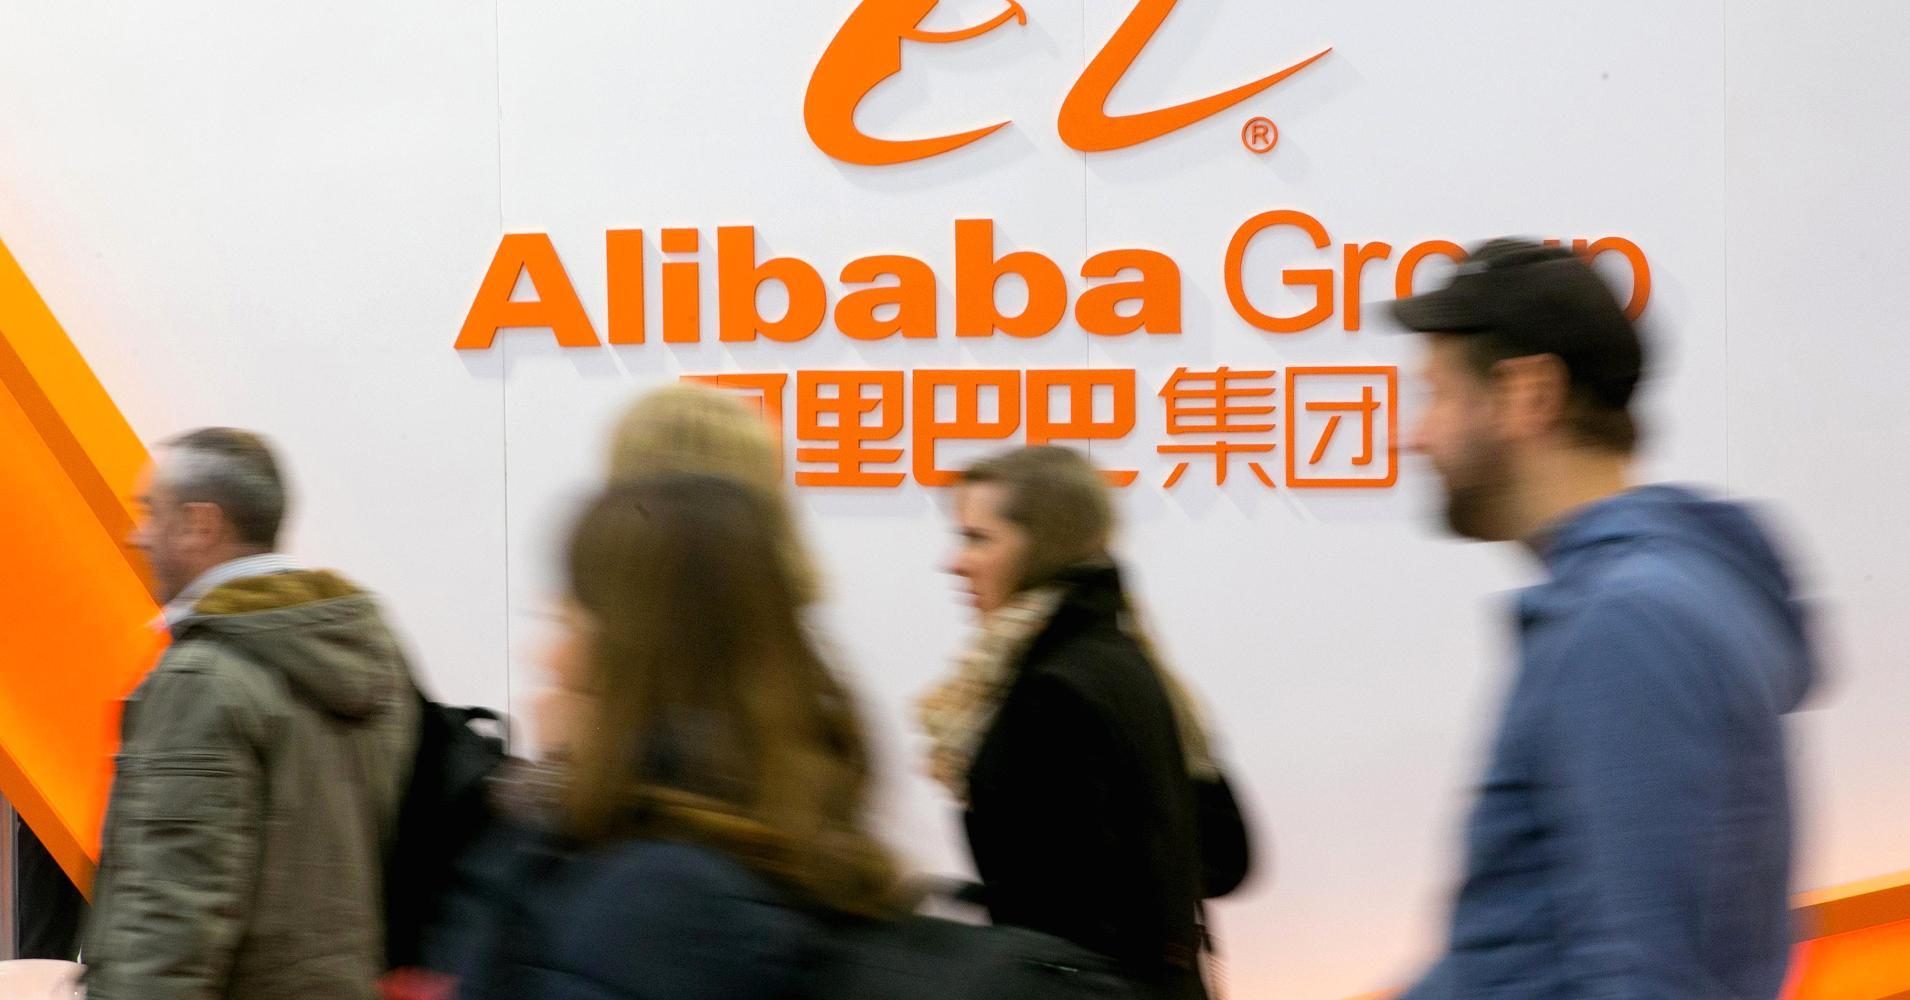 Alibaba 'undervalued' going into earnings: Expert